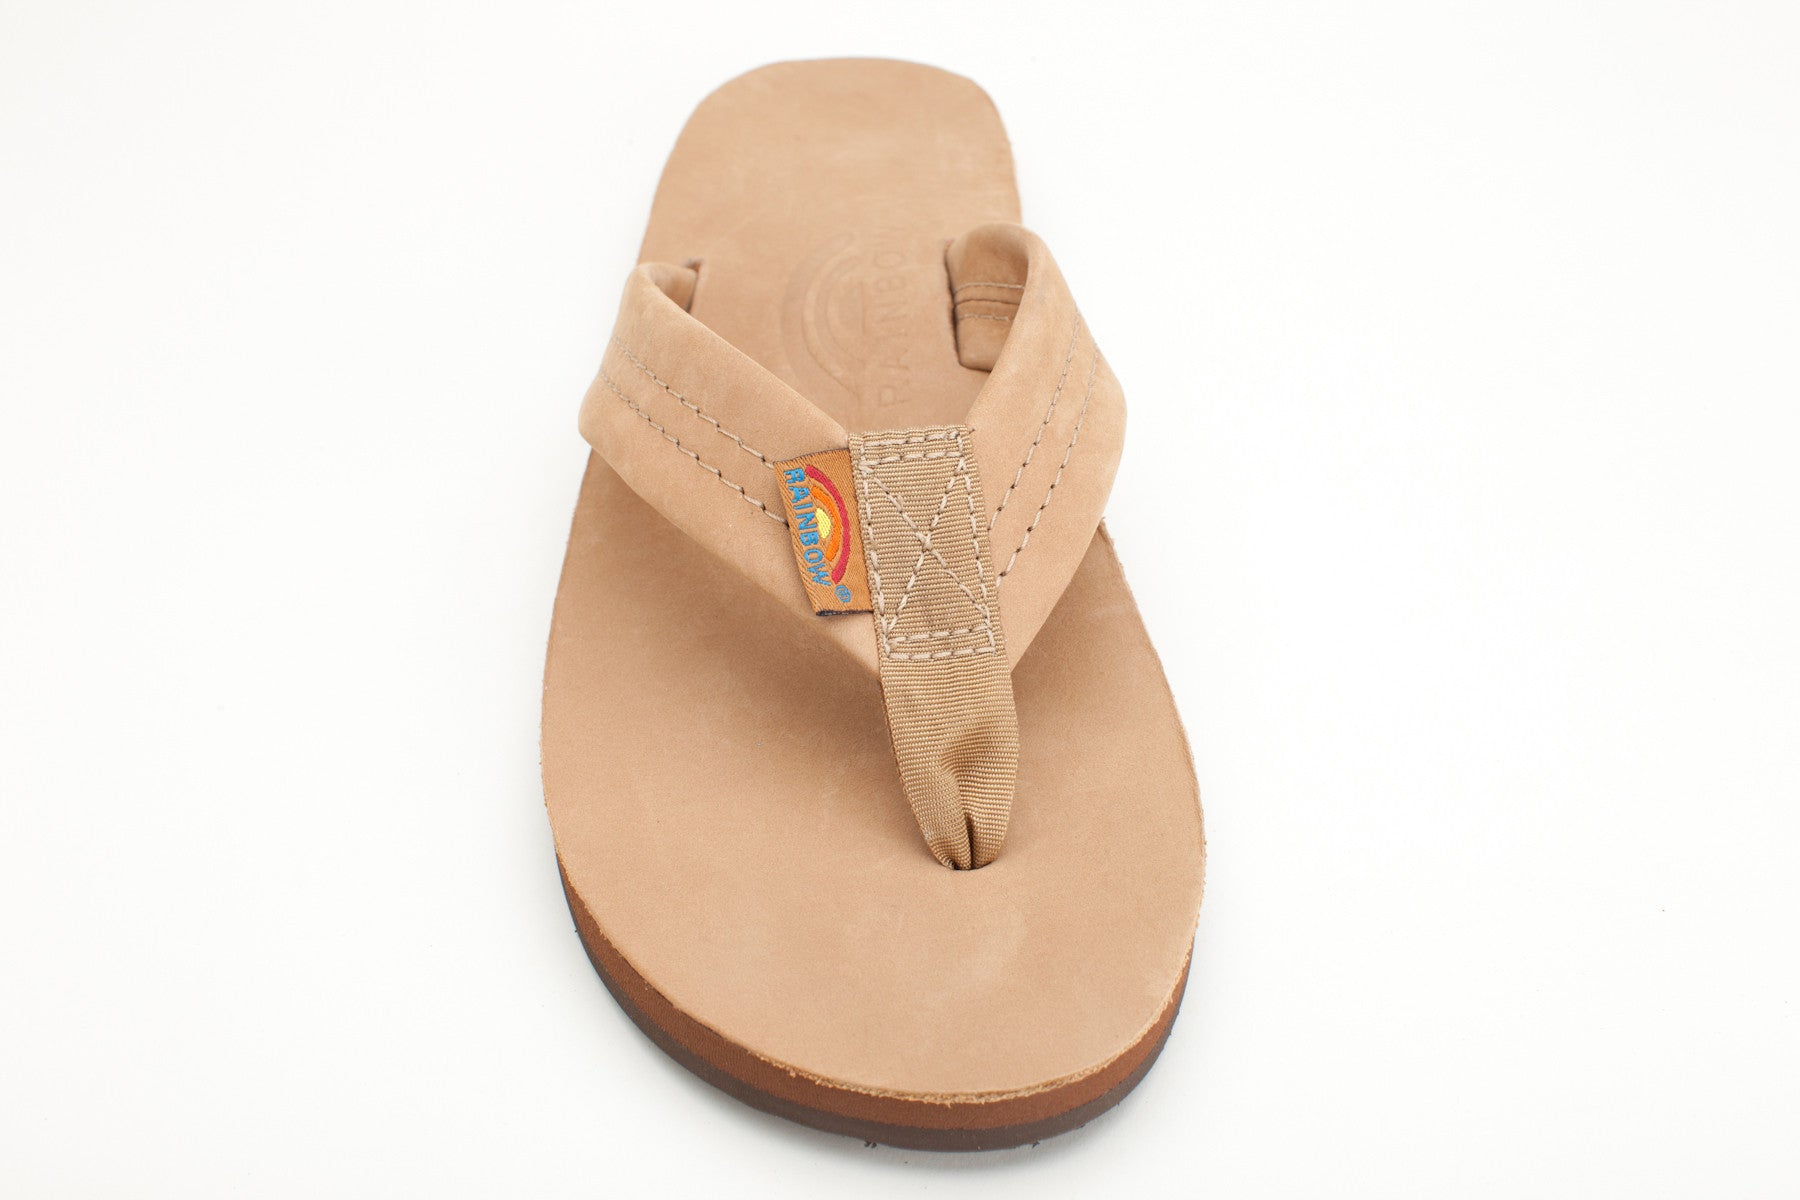 f2c72e93fdcf Rainbow Sandals Women s Sierra Brown Premier Leather Single Layer with Arch  Support and a Wide Strap